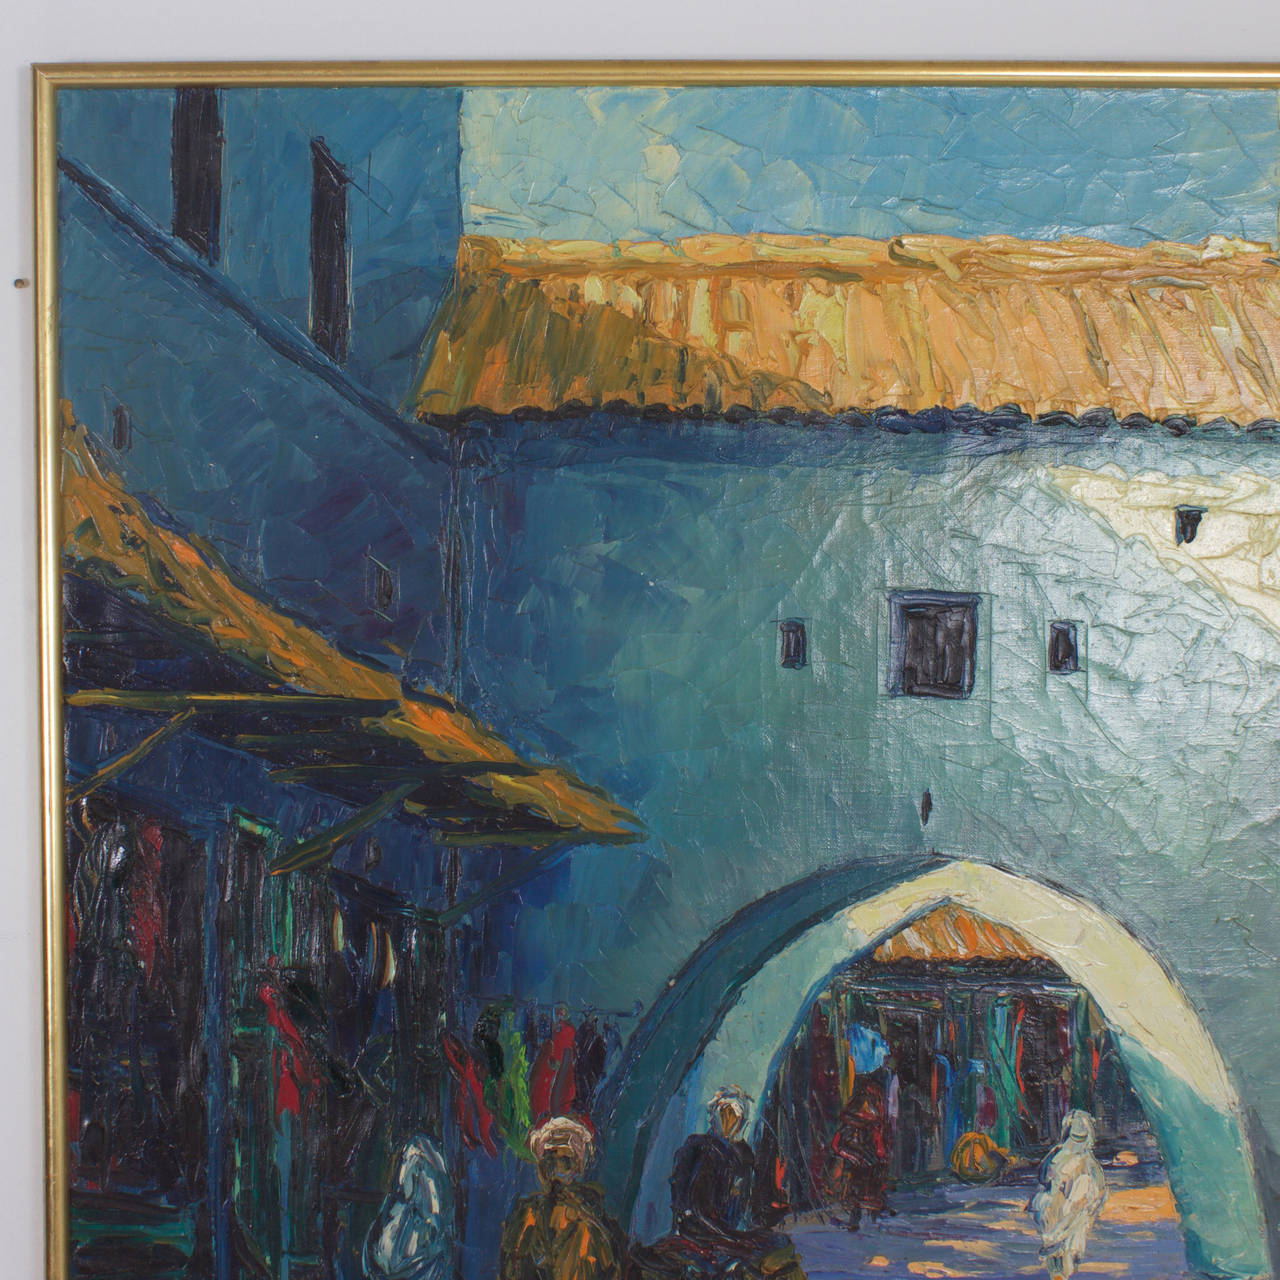 Mid Century acrylic on canvas painting of a Middle Eastern Street scene executed with bold impressionistic brush strokes. Depicting exotic Architecture with shadowy figures and colorful doorways. Signed J. Ferrer at the bottom.